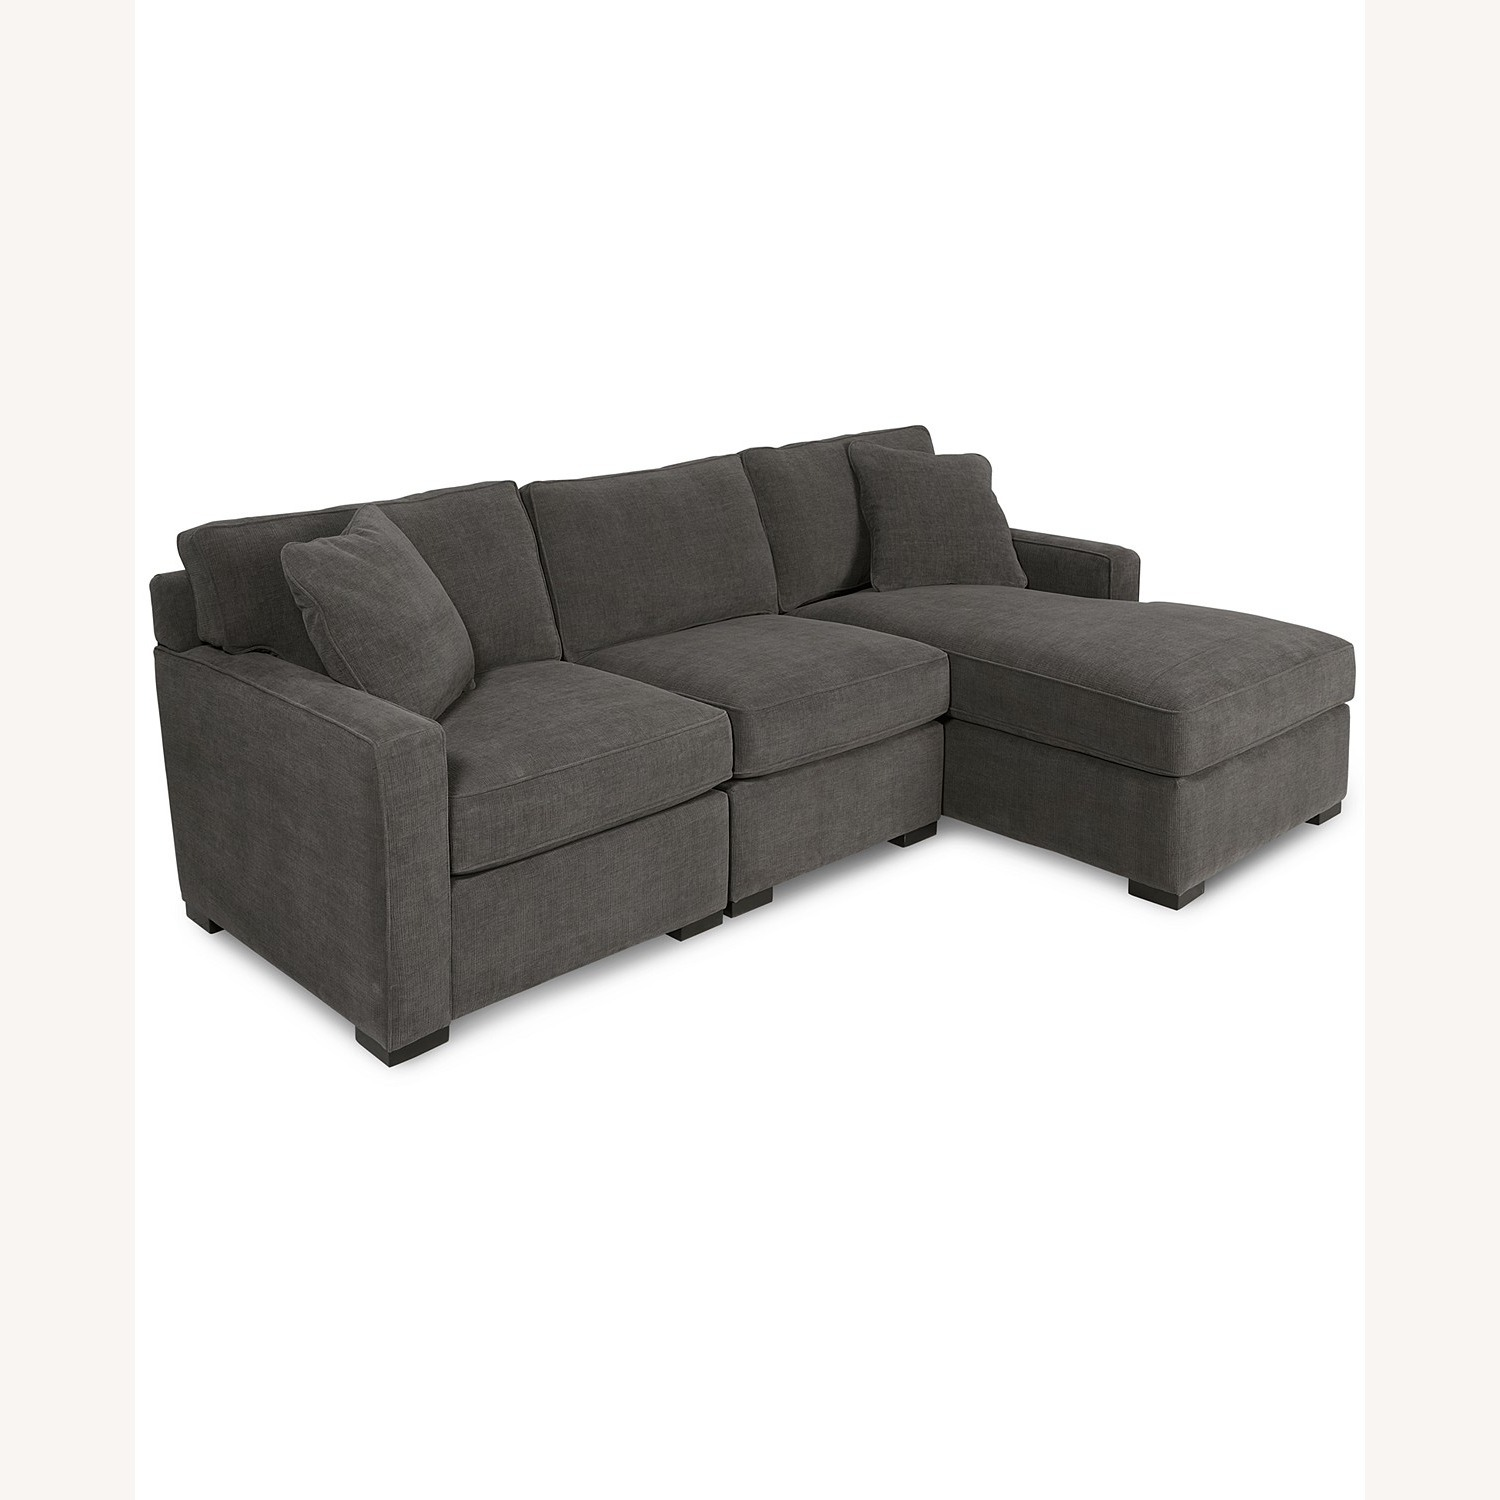 Macy's 3 Piece Sectional Sofa with Chase - image-2